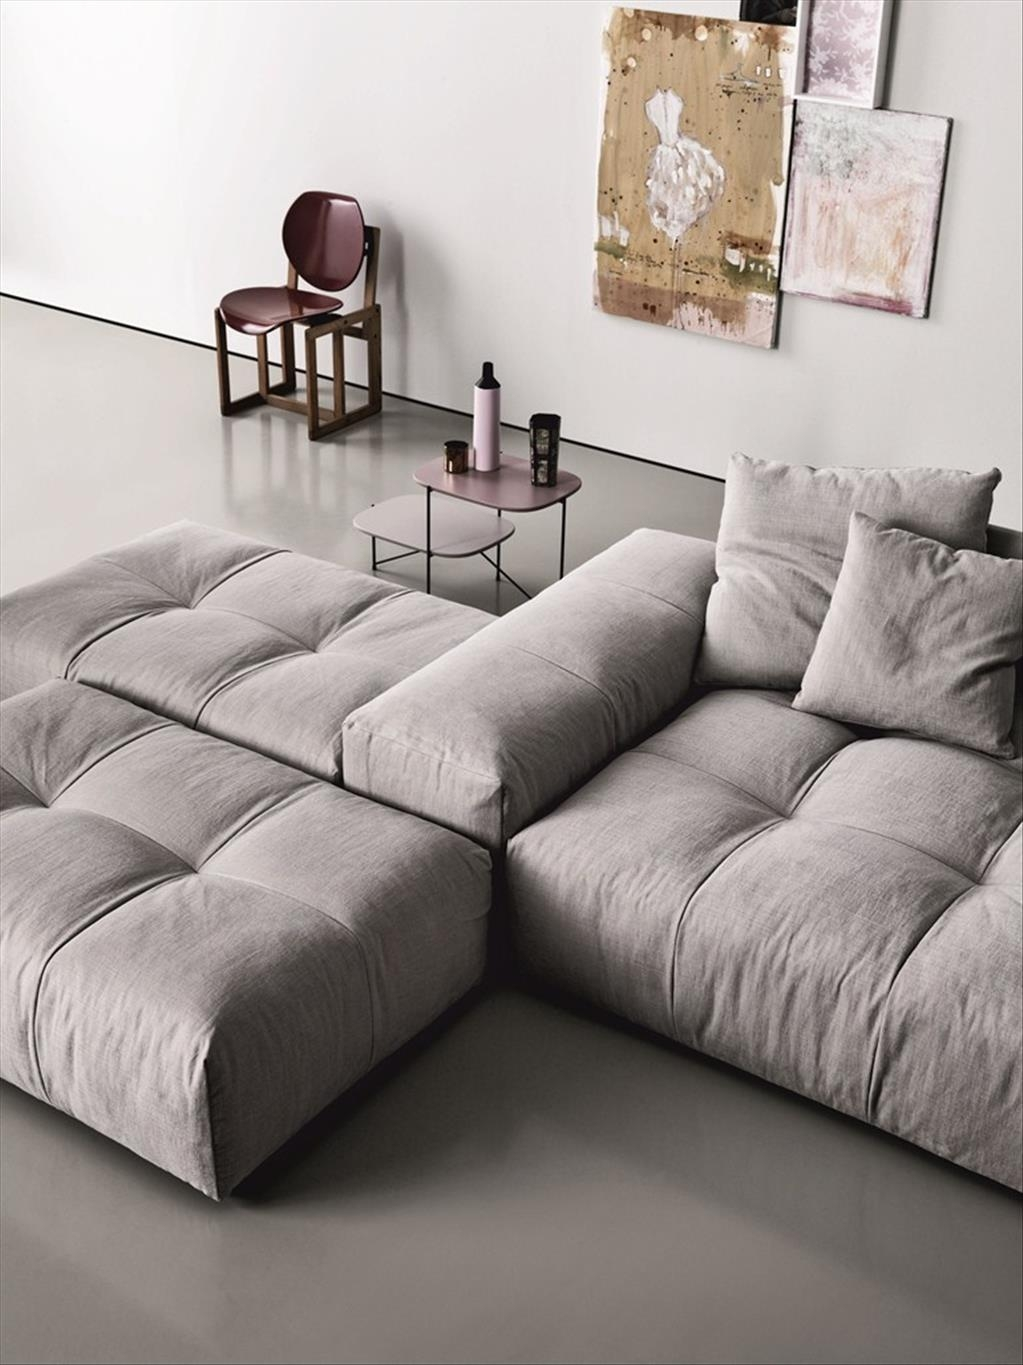 Furniture Awesome Modular Sectionals Sofas Cozy Modular In Cozy Sectional Sofas (Image 6 of 15)